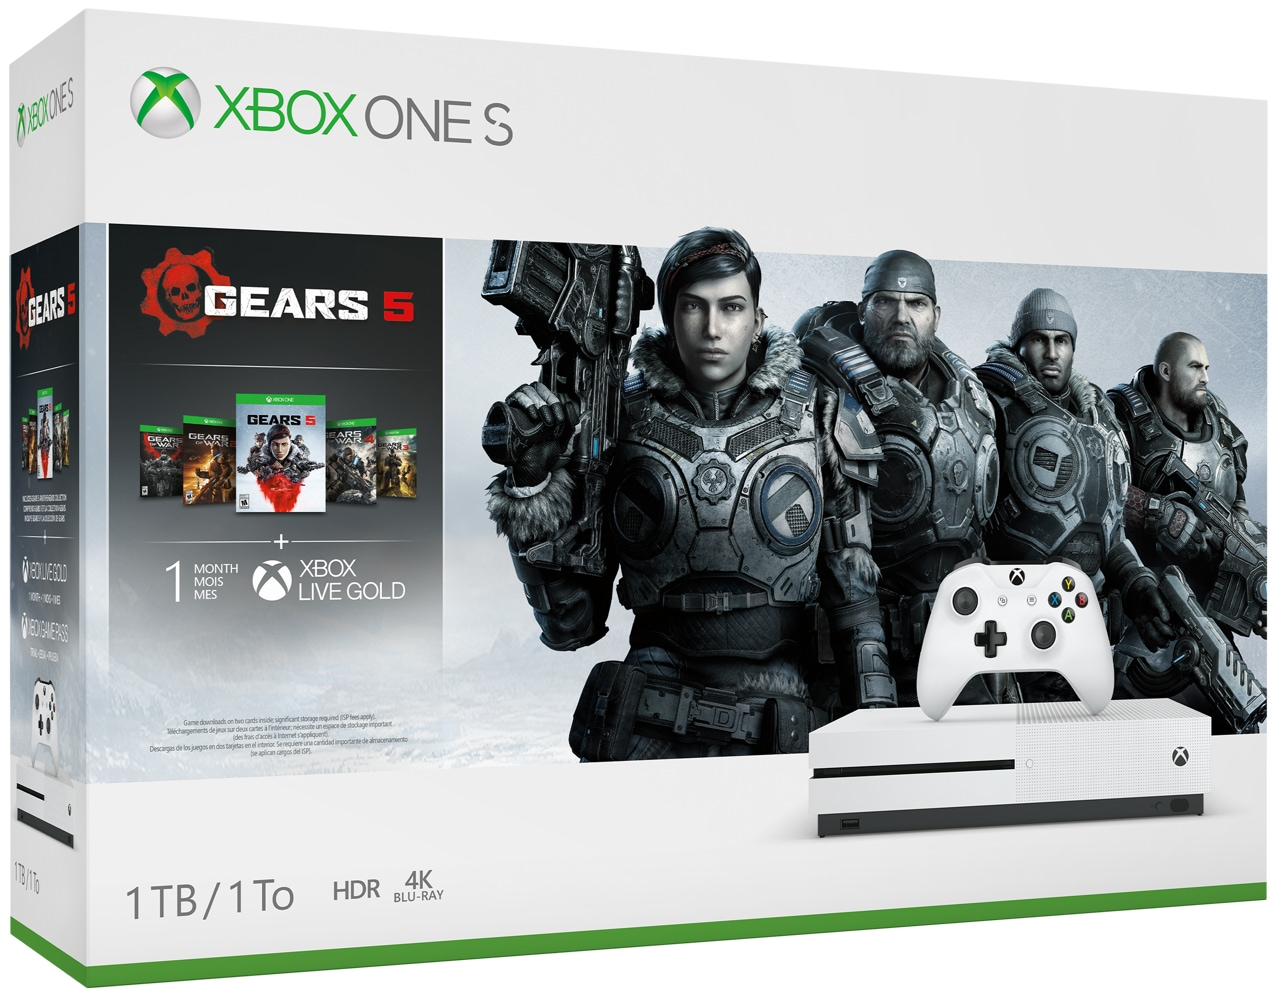 Xbox One S Gears 5 bundle box art